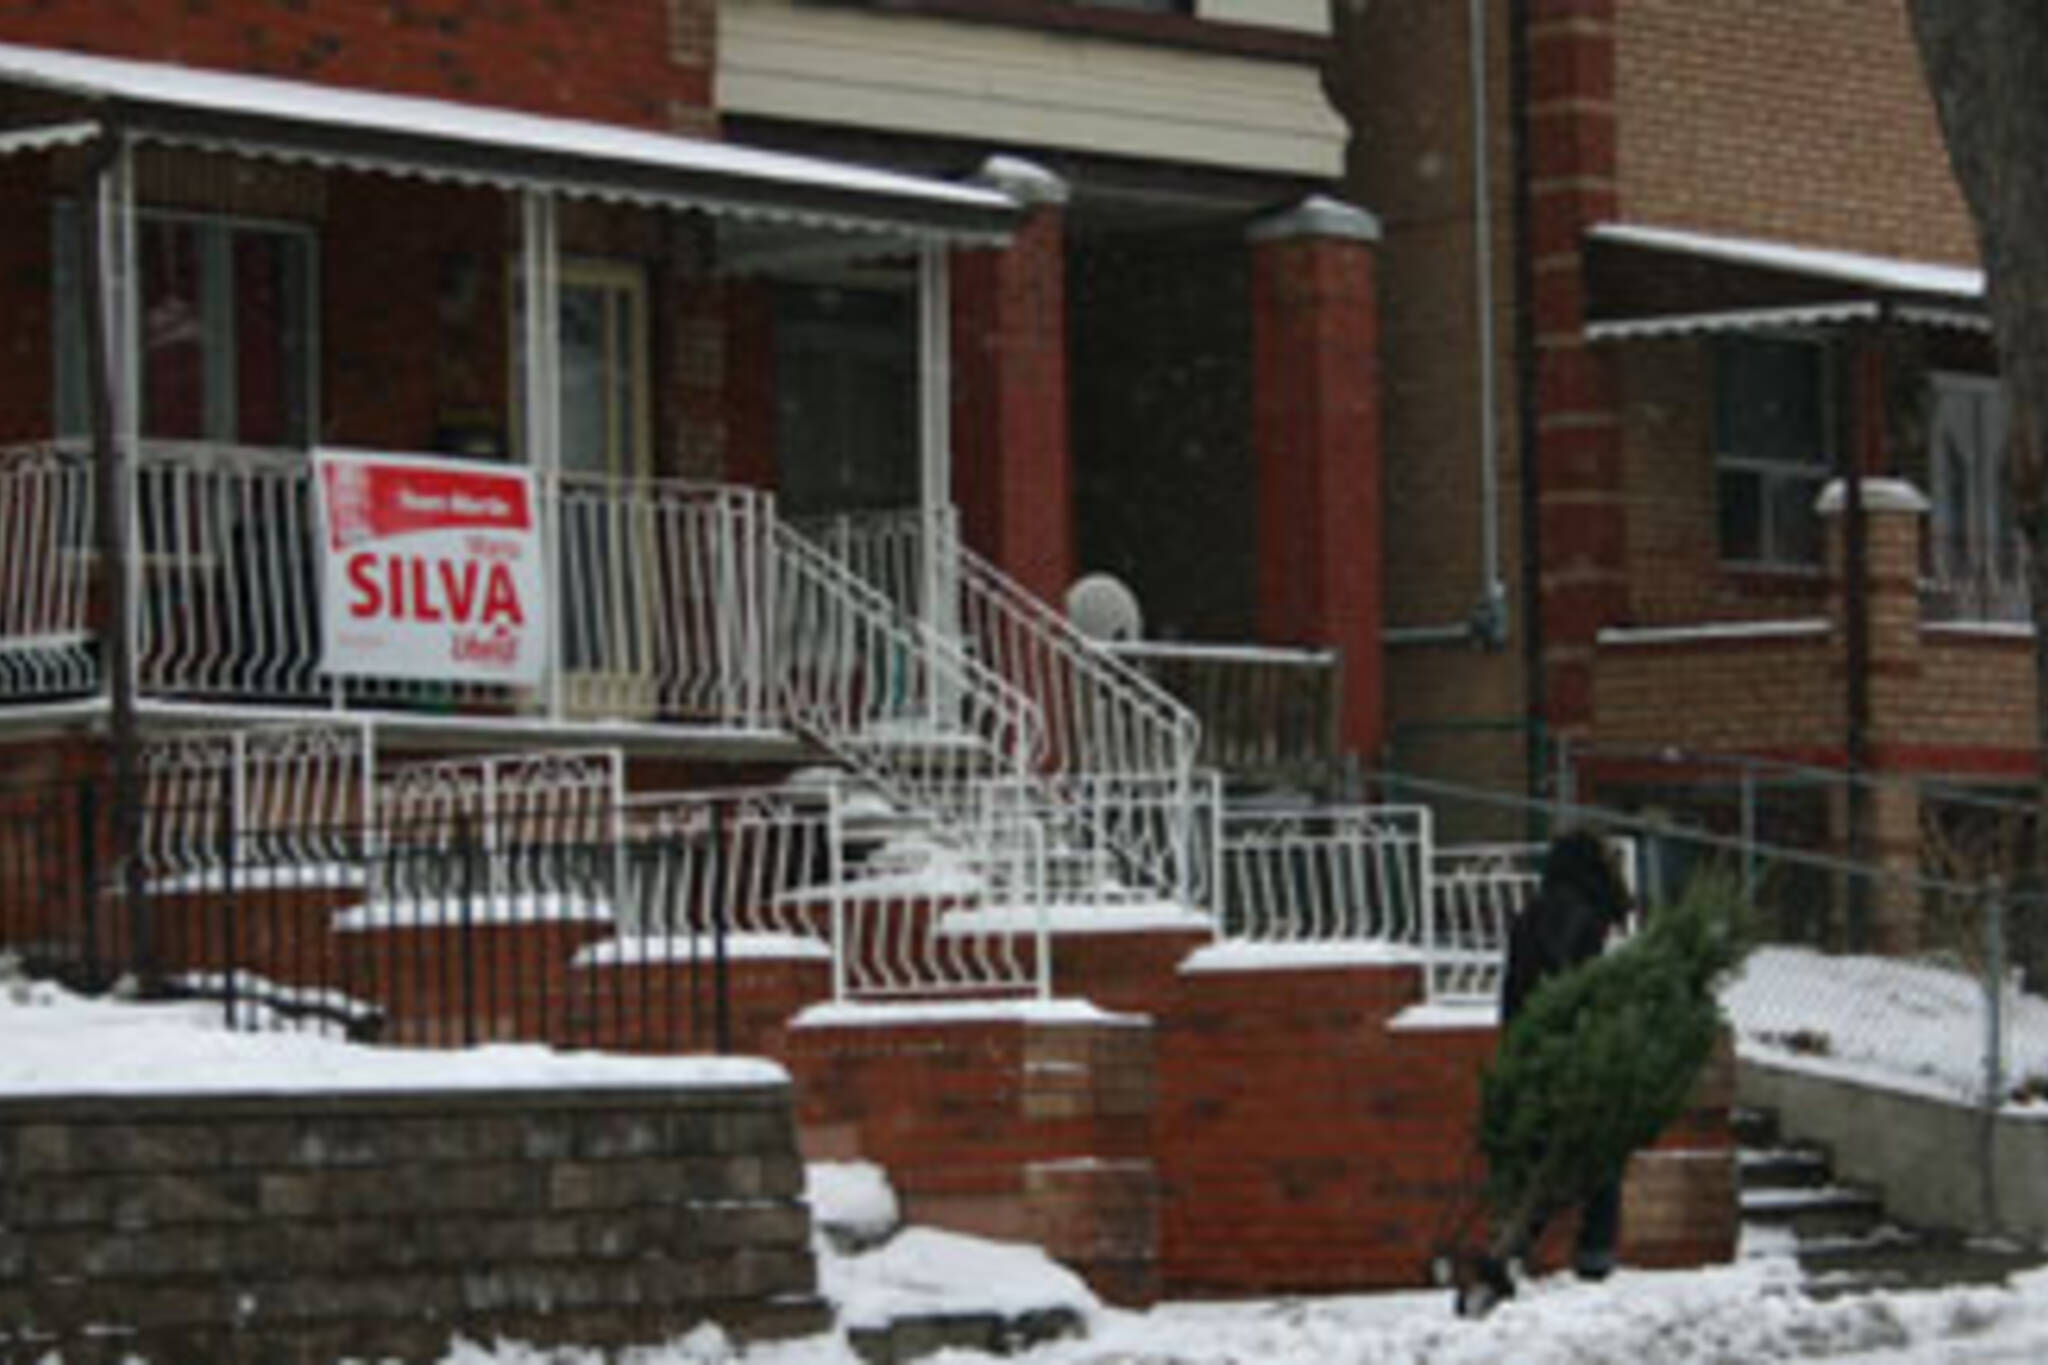 Last year's campaign sign, this year's campaign: the advantages of incumbancy.